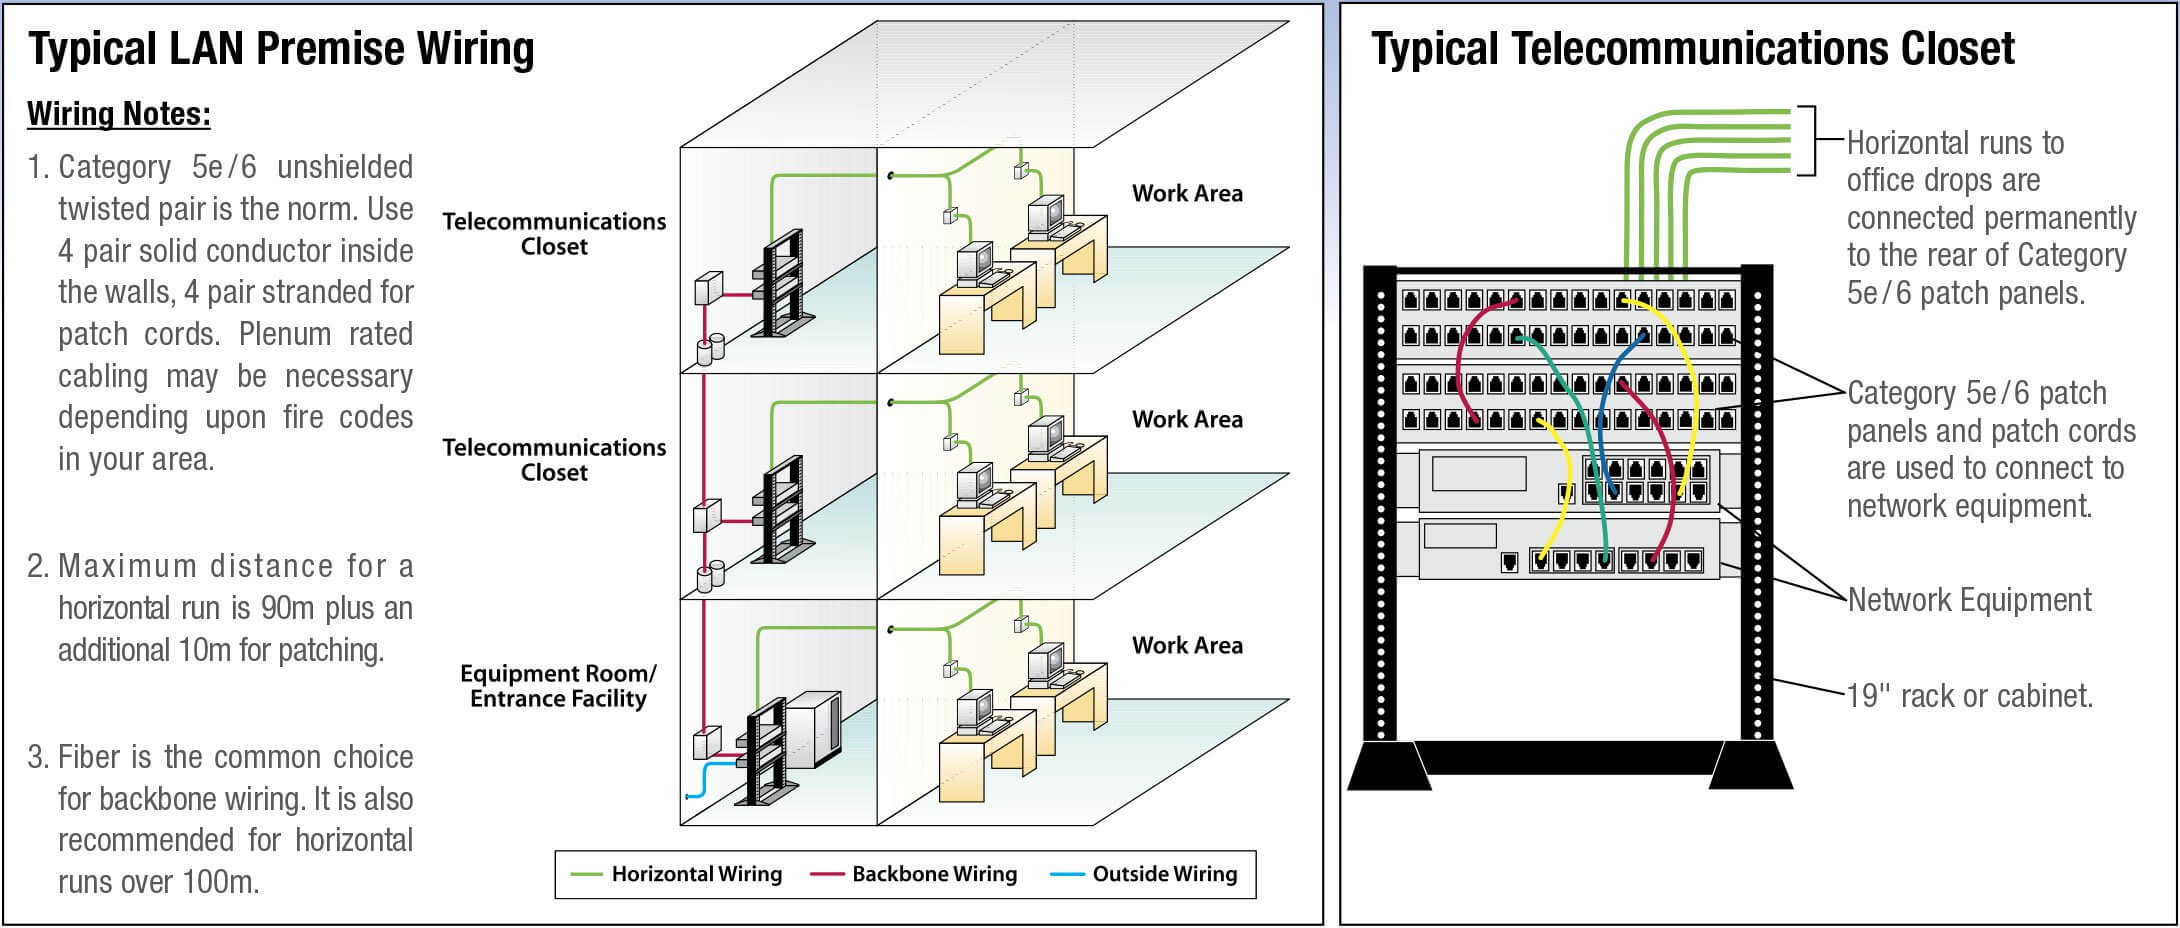 typical lan premise wiring and telecommunications closet